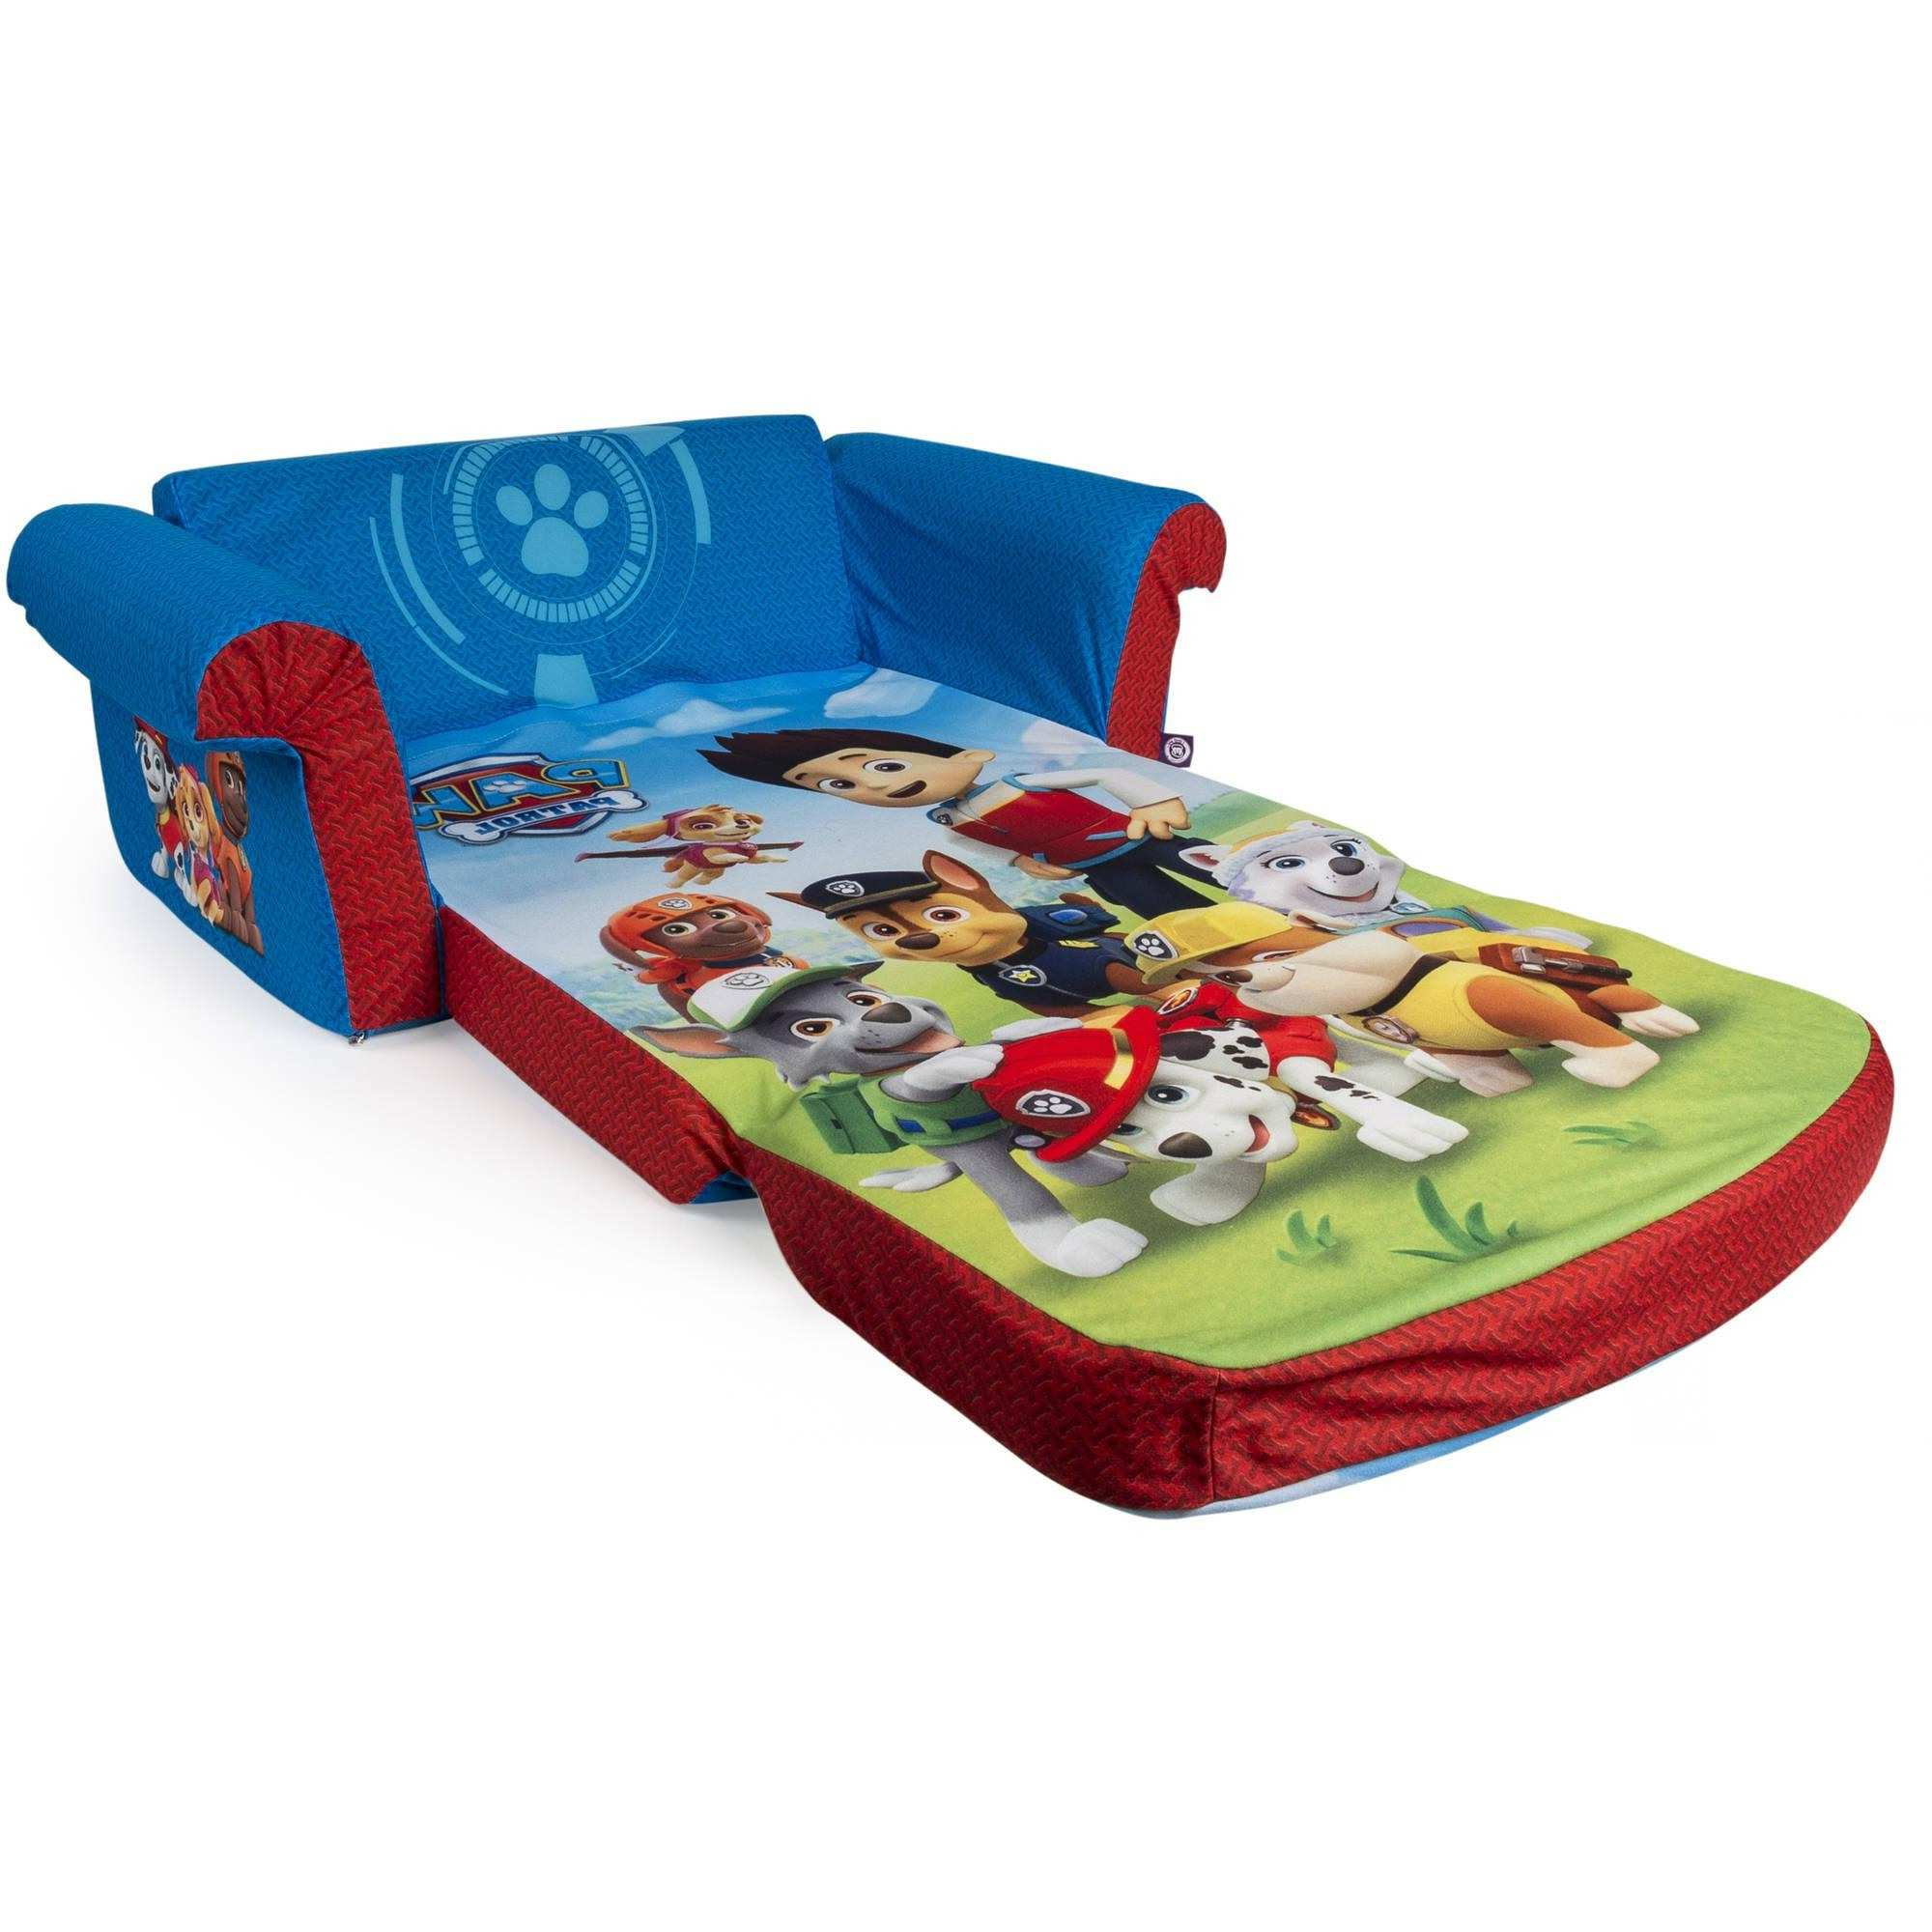 Most Current 20 Best Childrens Sofa Bed Chairs From Awesome Flip Open Foam Sofa Throughout Childrens Sofa Bed Chairs (View 16 of 20)